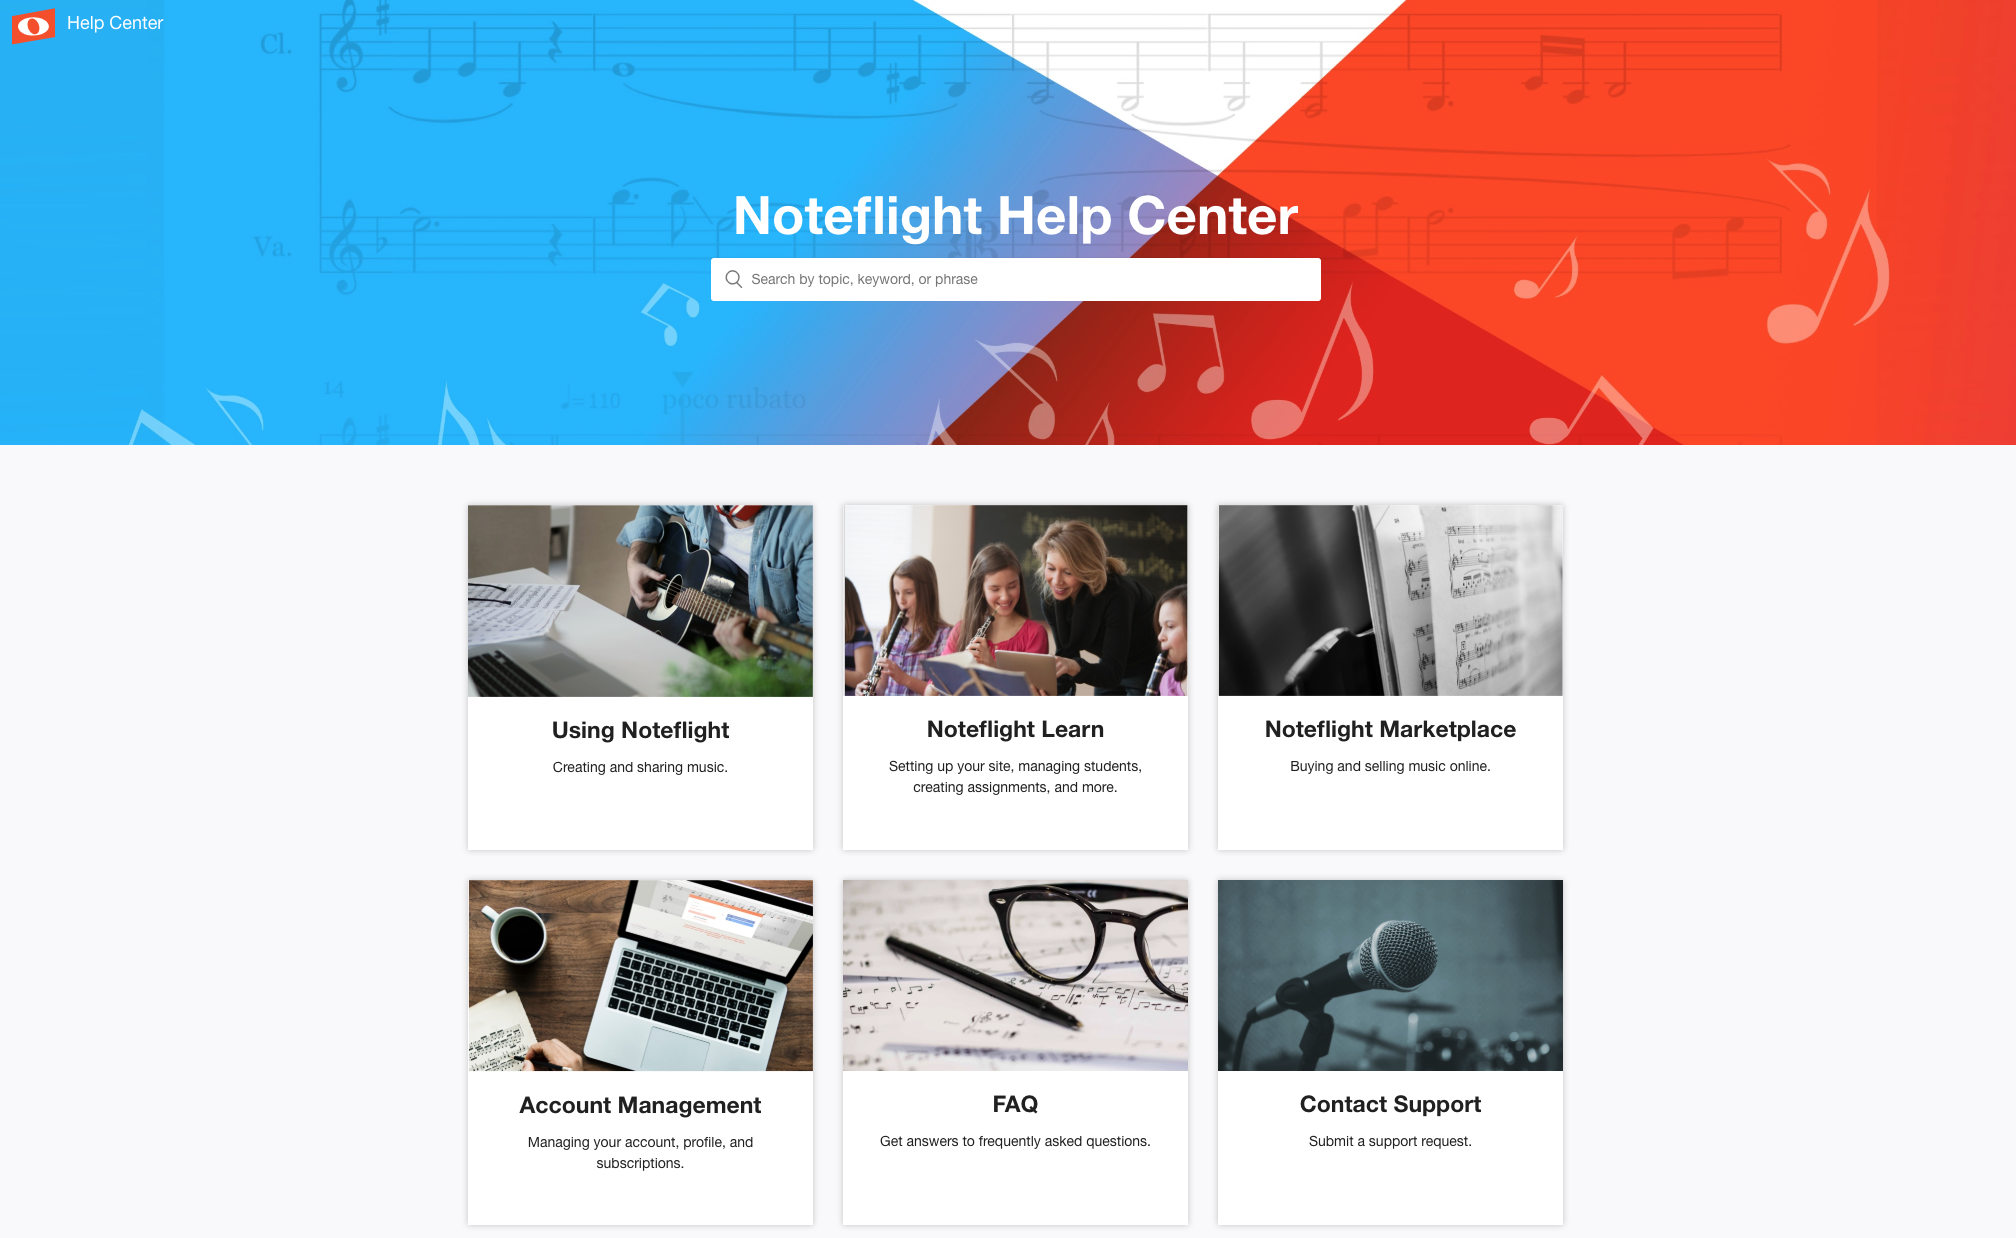 Noteflight Help Center